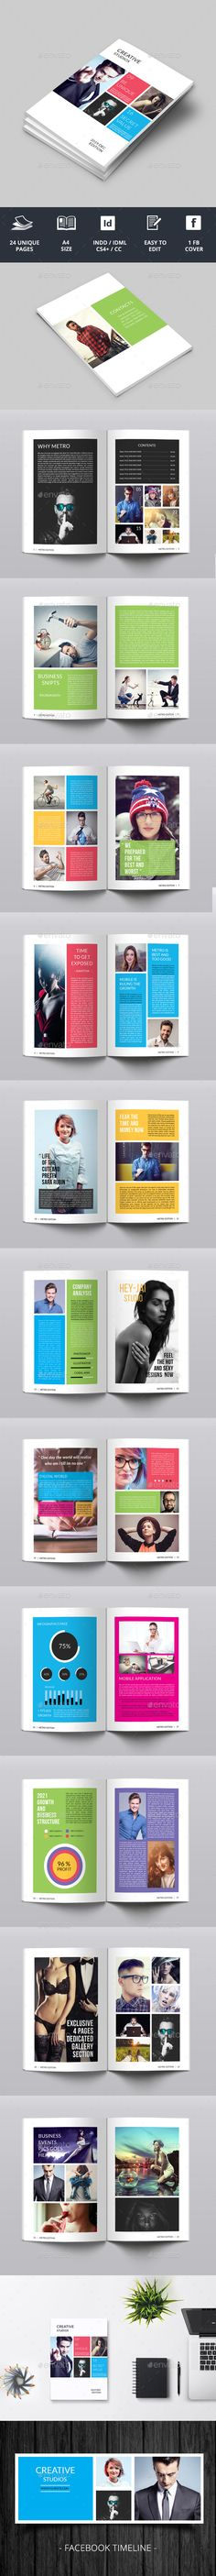 Metro Style Newsletter - Newsletters Print Templates Download here : https://graphicriver.net/item/metro-style-newsletter/15788299?s_rank=107&ref=Al-fatih